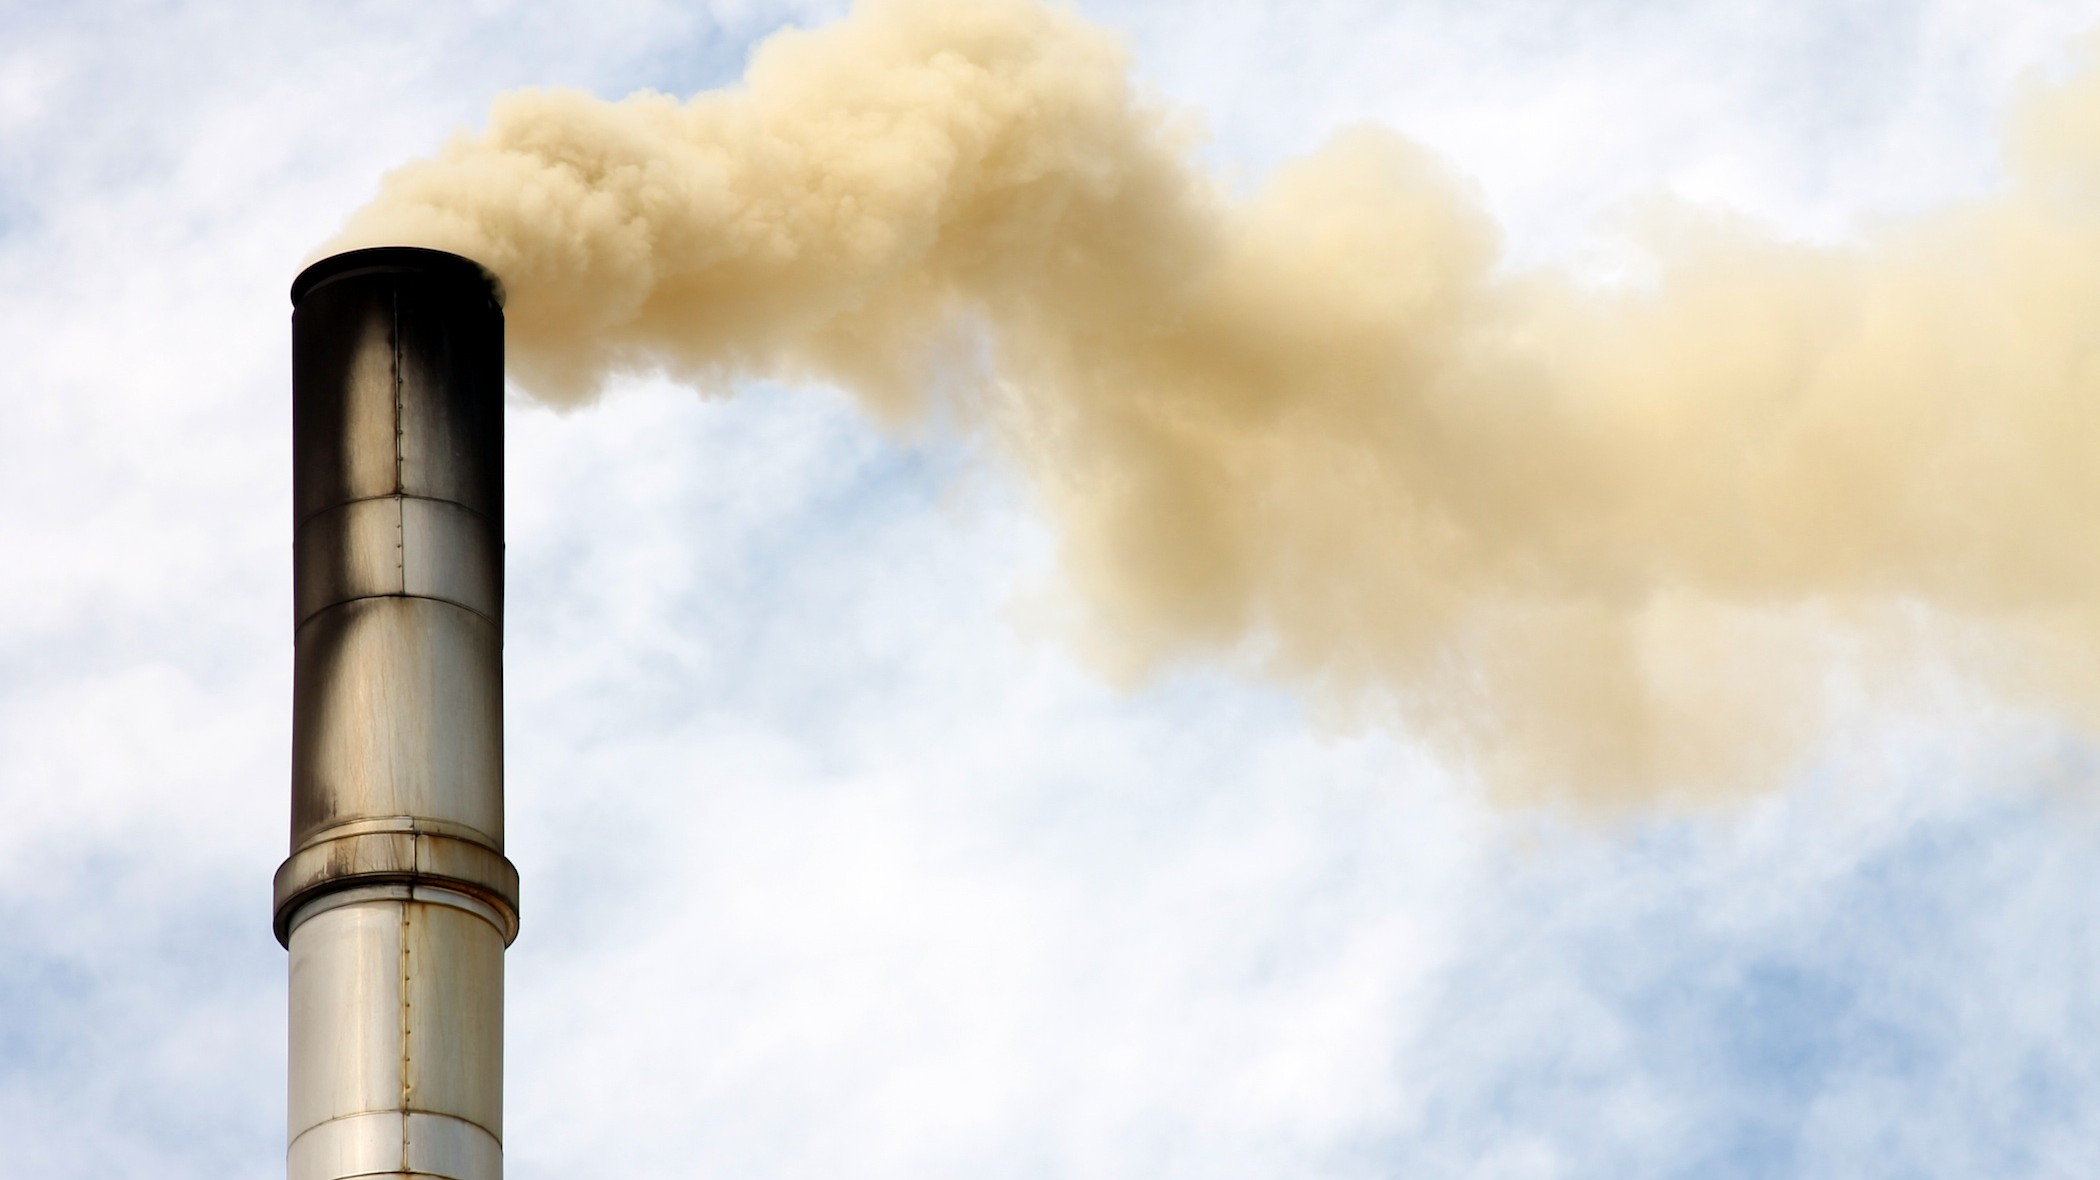 Get Ready For More False Claims By Big Polluters